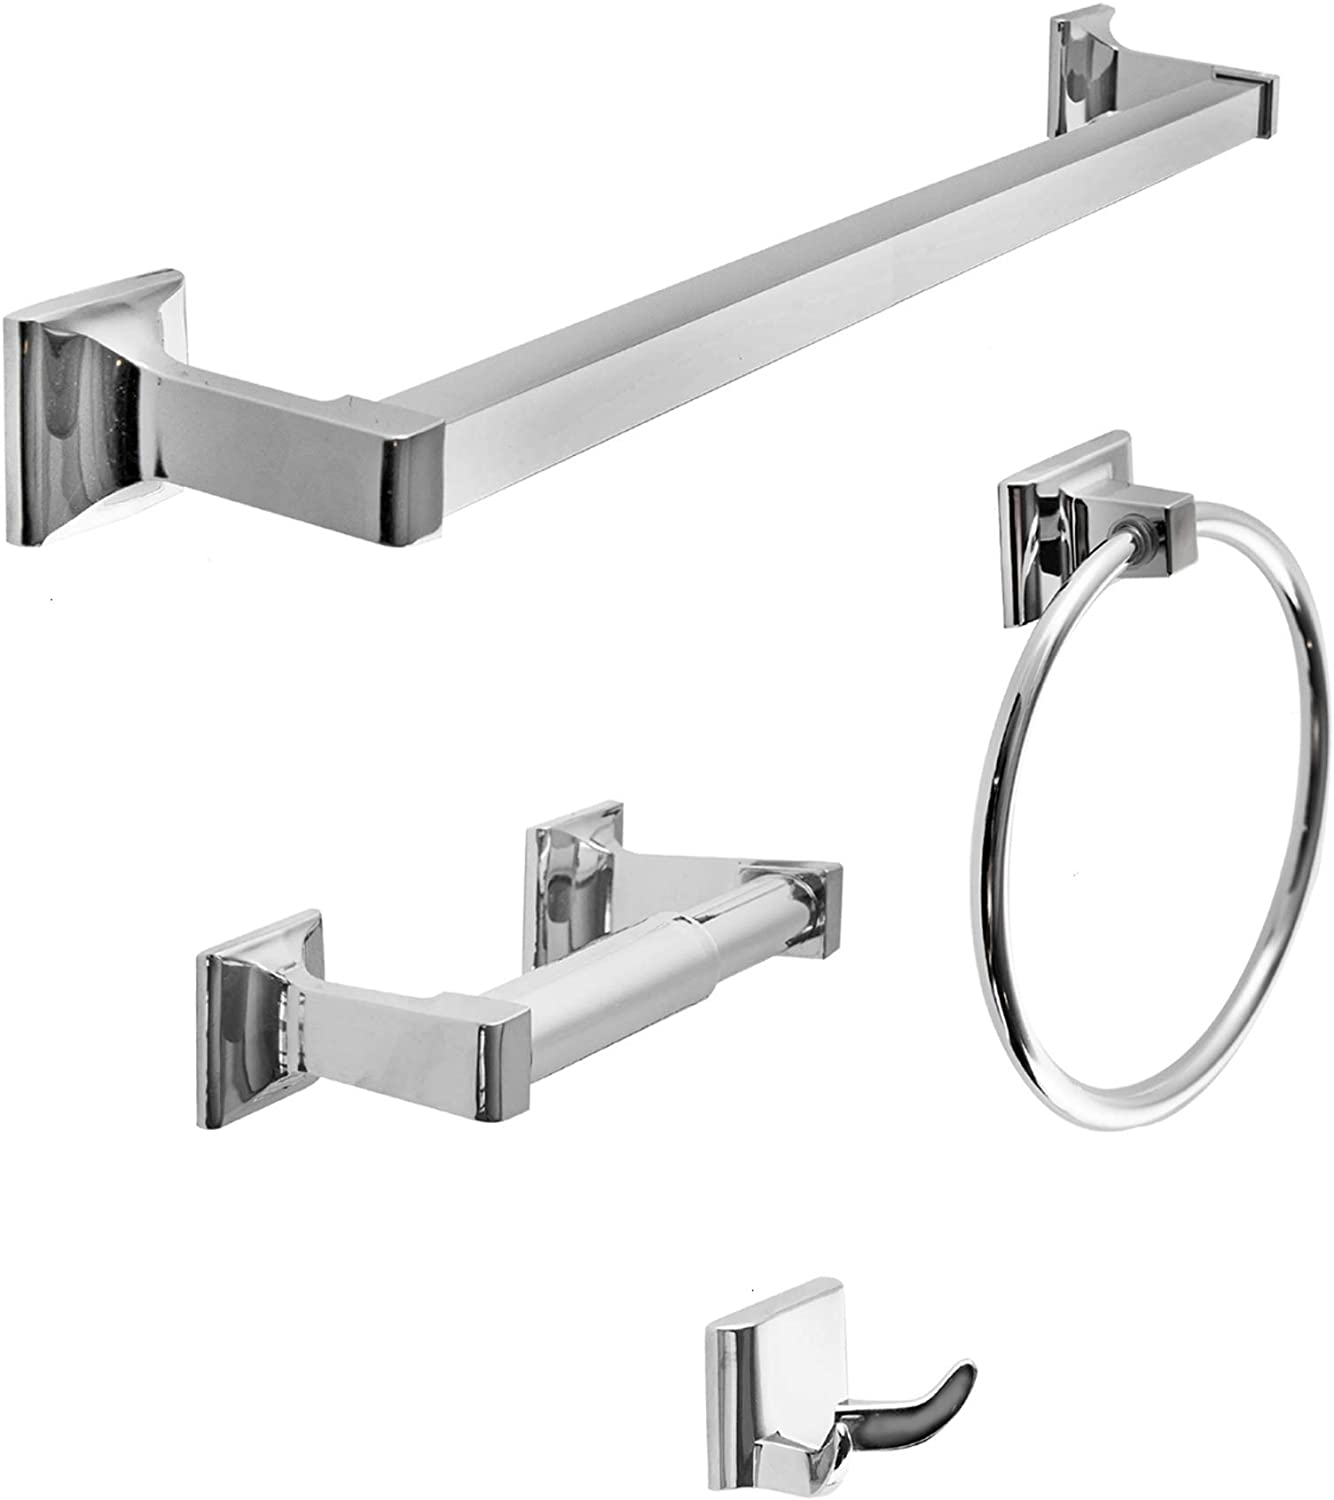 """SENTO Cellar Classic Bathroom Accessories Set, Heavy Duty Metal Bath Hardware Set Wall Mounted, Includes Robe Hook, Standard Toilet Paper Holder, Towel Ring, 24"""" Towel Bar (4-Piece, Polished Chrome)"""